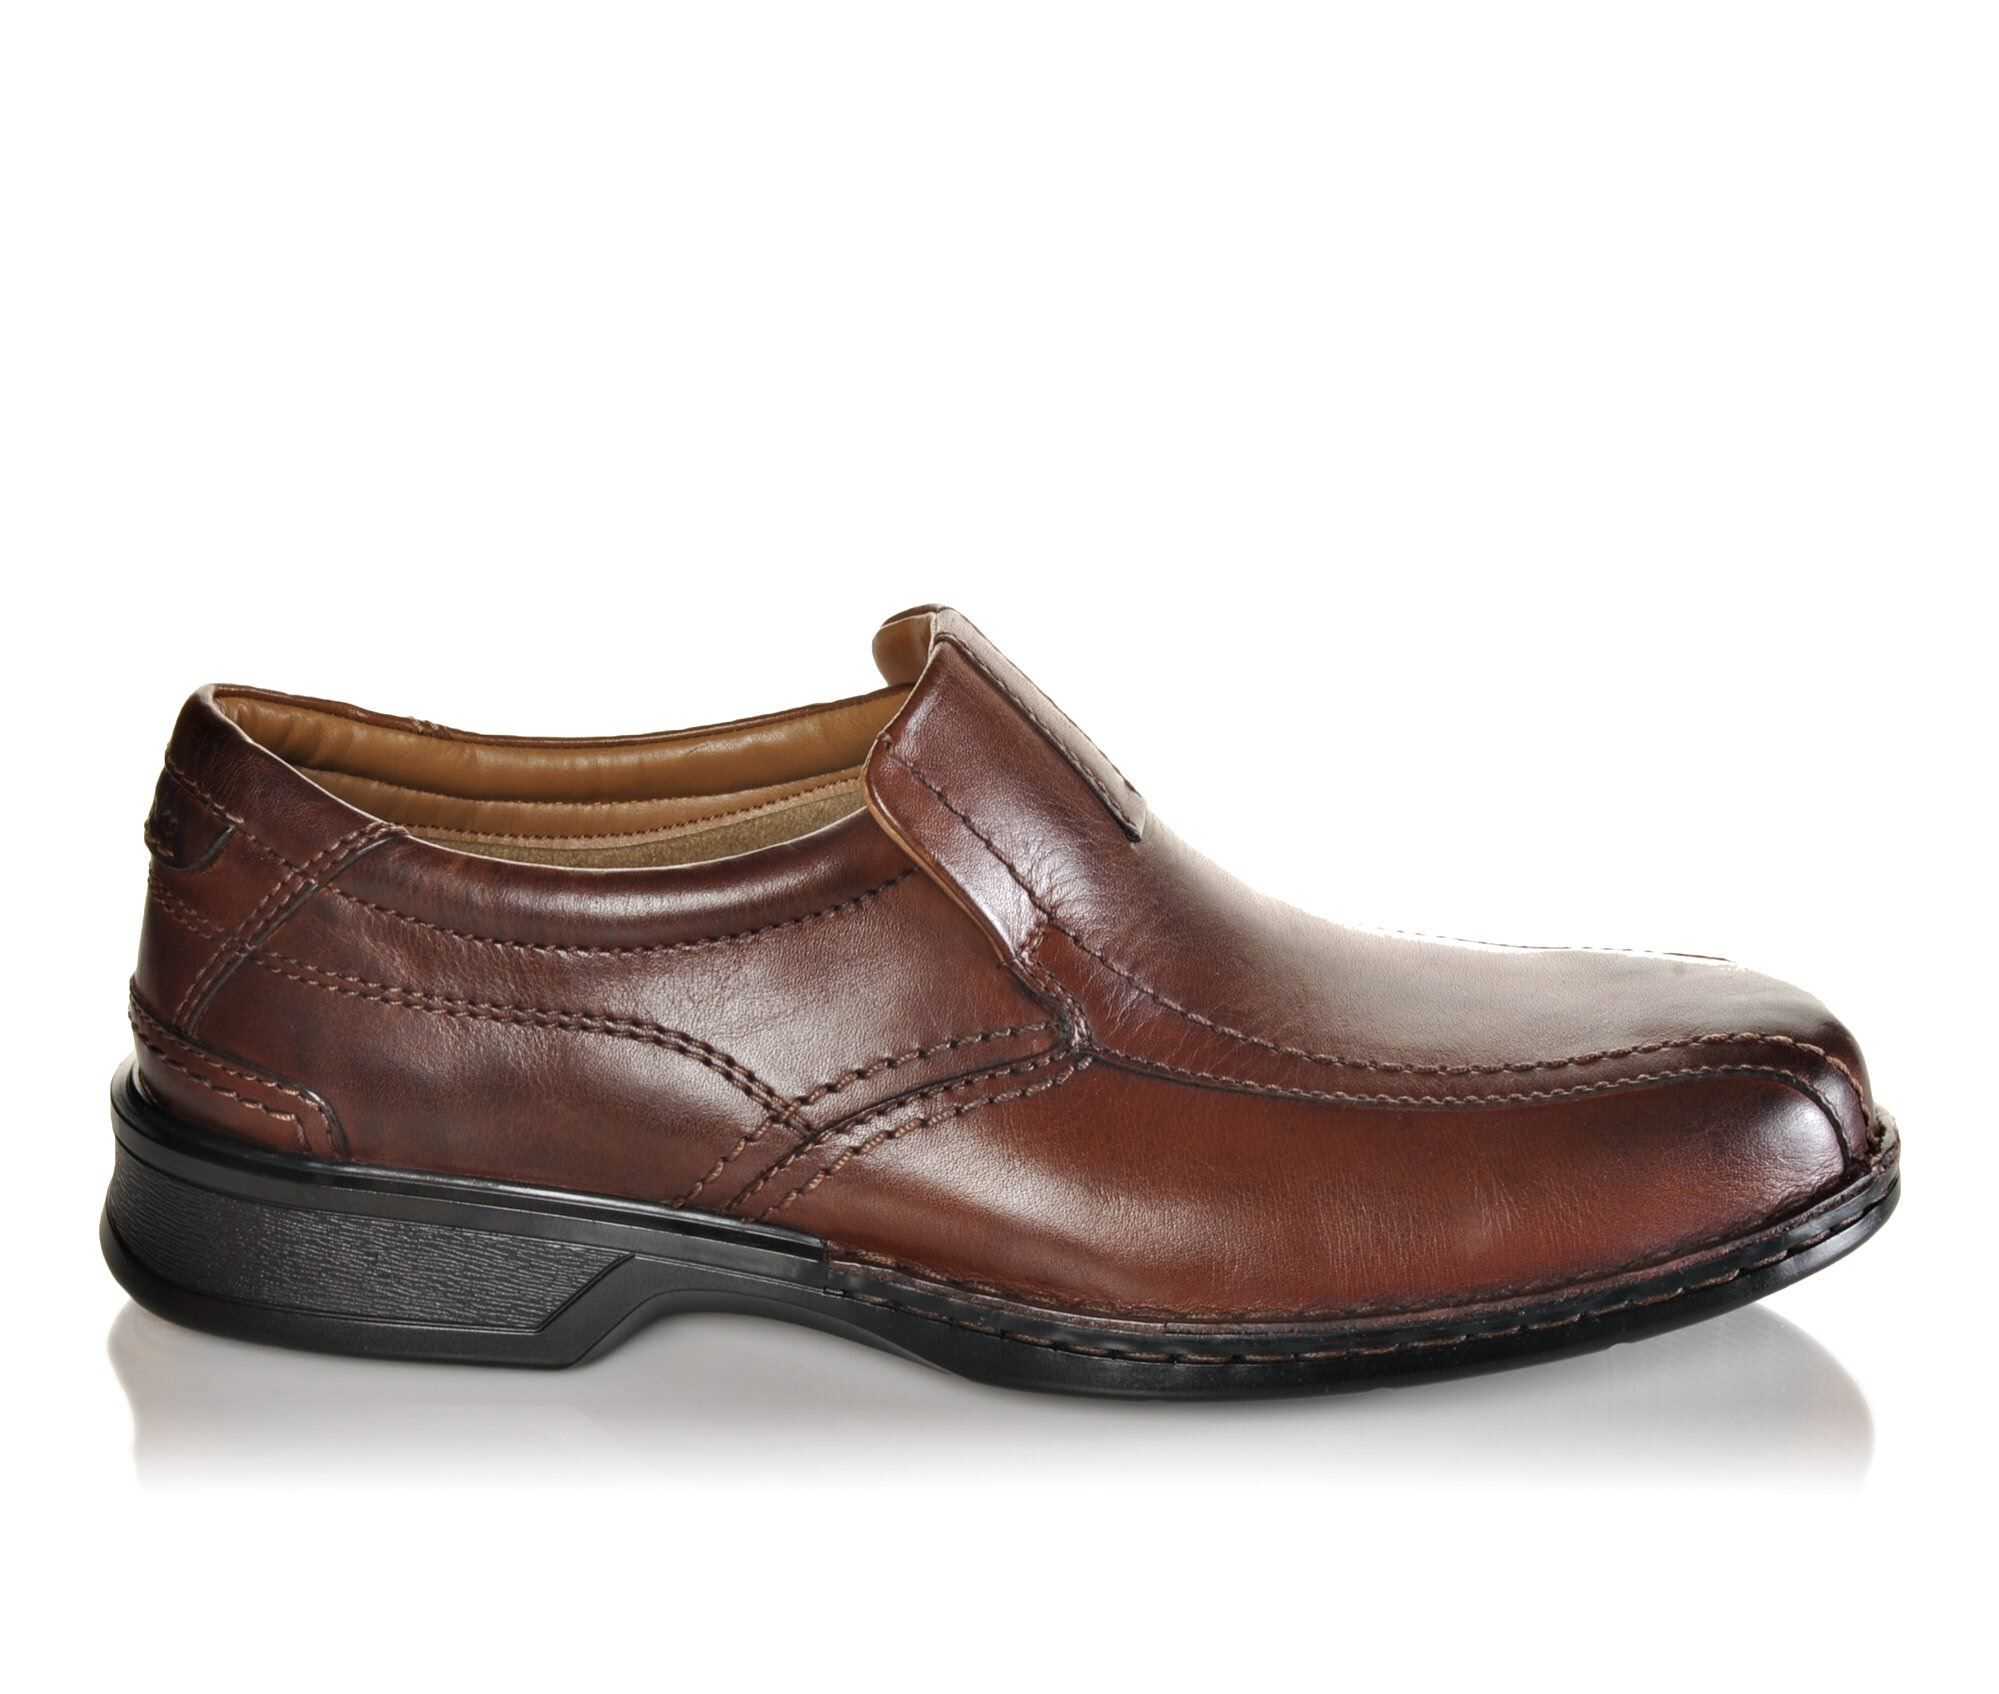 Men's Clarks Escalade Step Slip-On Shoes Brown